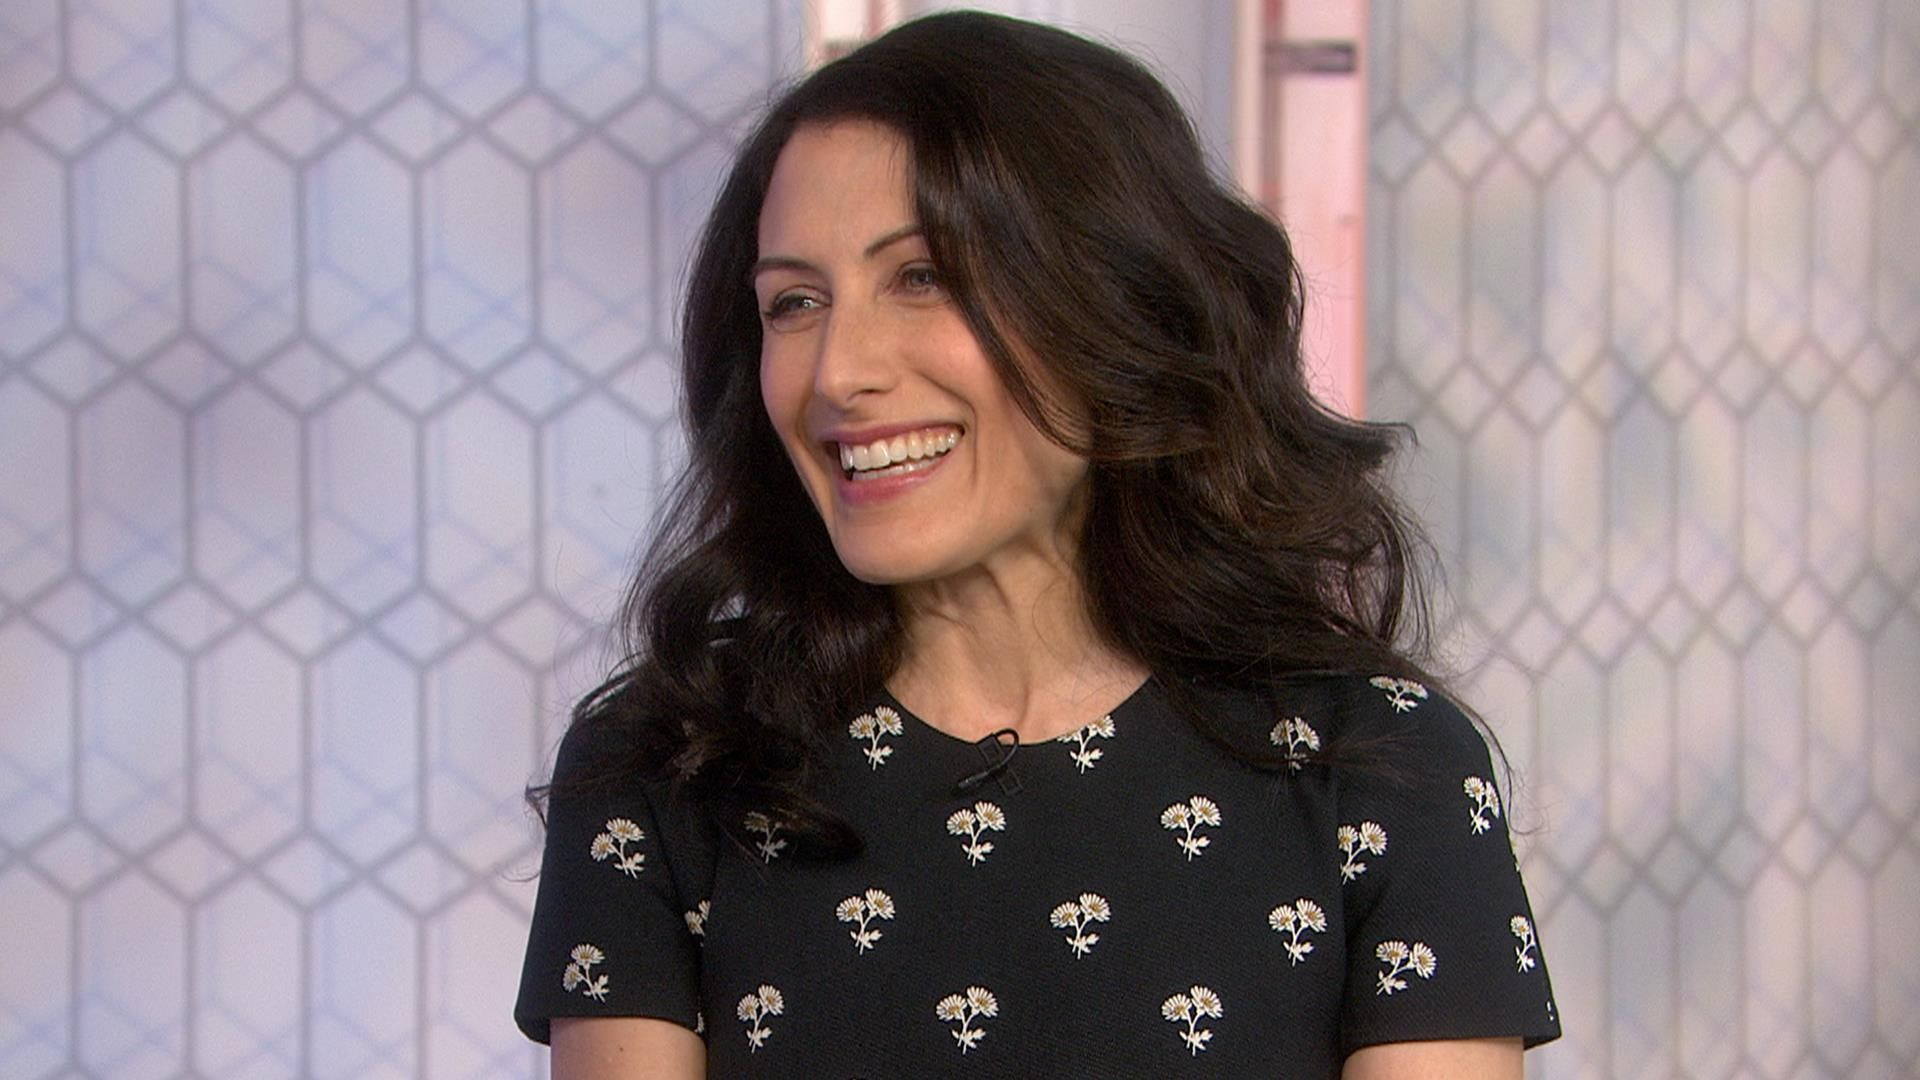 """Actress Lisa Edelstein, star of Bravo's """"Girlfriends' Guide to Divorce,"""" talks about the comedy-drama series being renewed for a fifth season and her happiness since getting married to artist Robert Russell at age 48."""